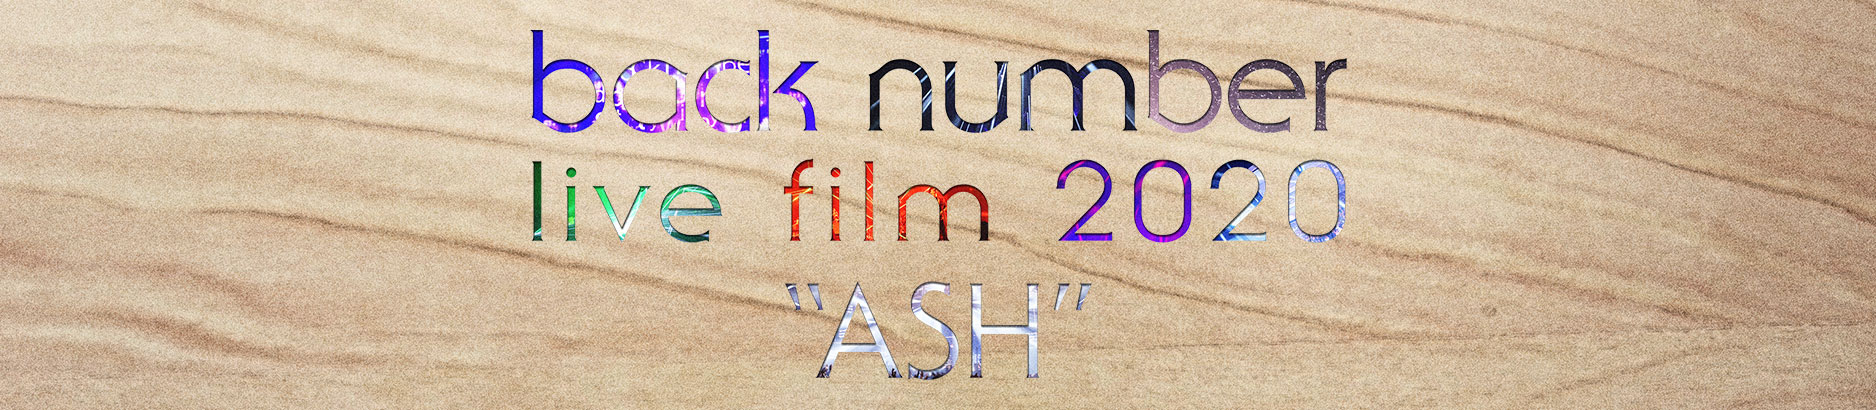 back number live film 2020 ash